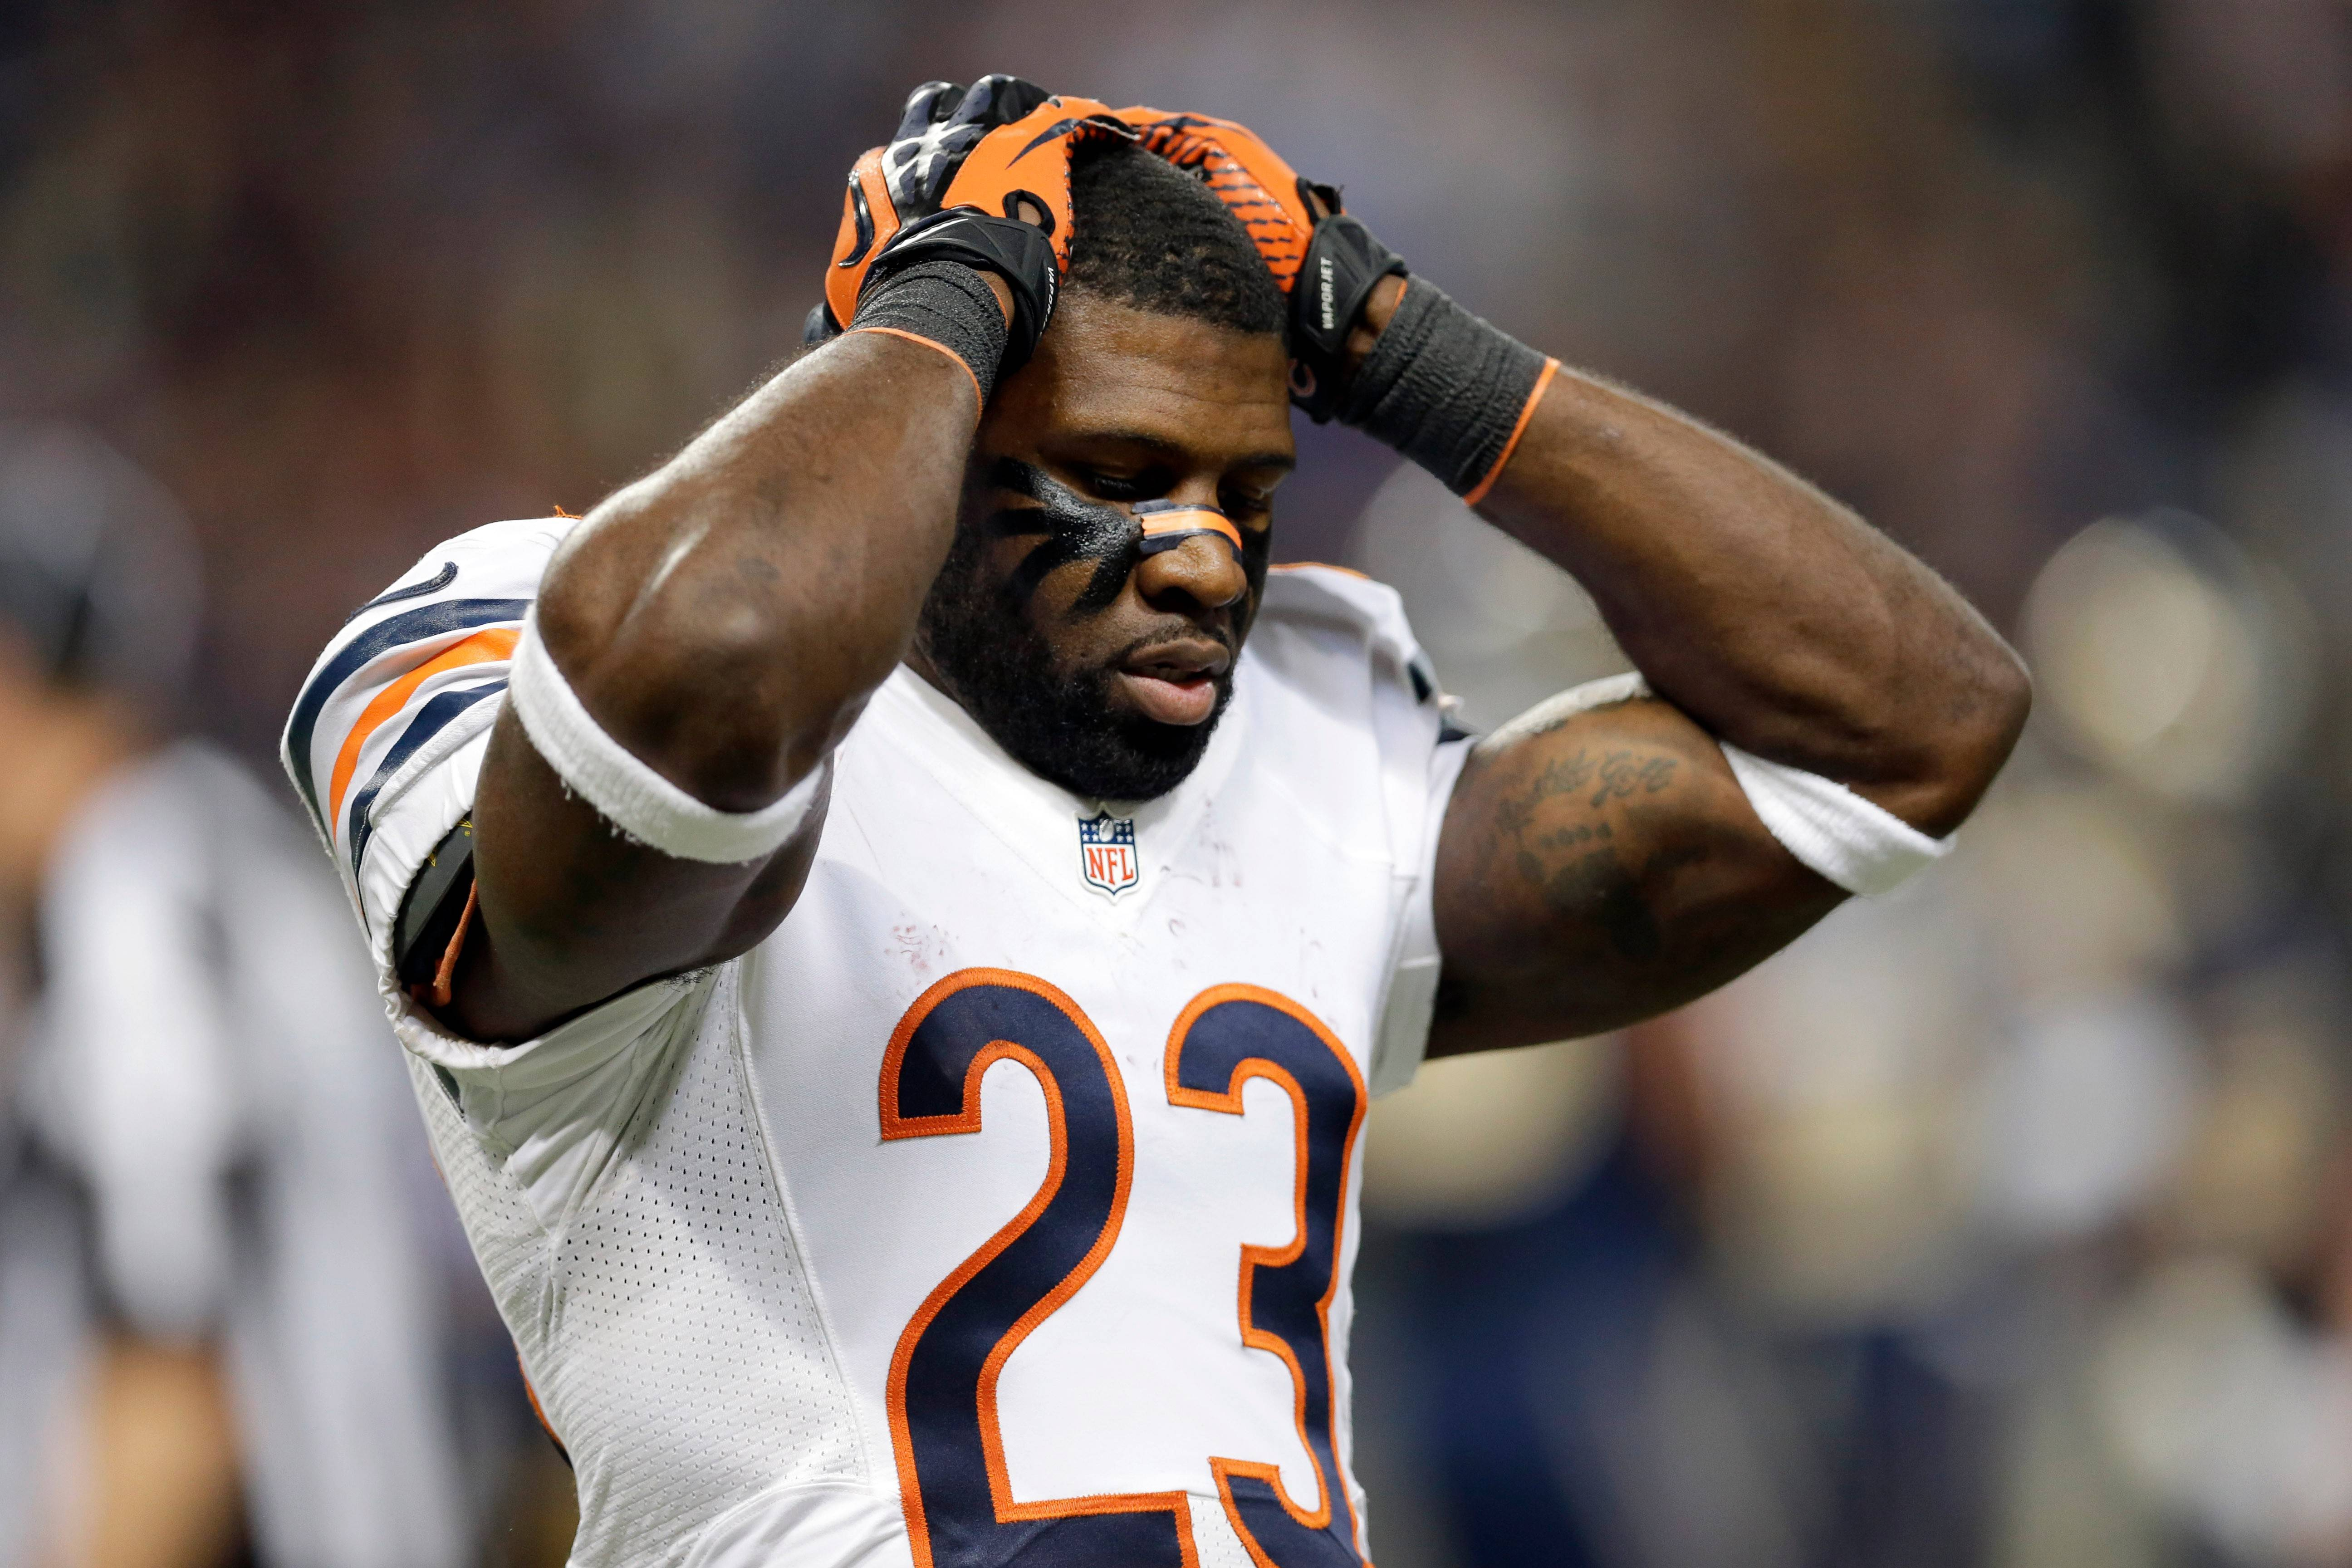 Former Chicago Bears kick returner Devin Hester has agreed to a three-year deal with the Atlanta Falcons.